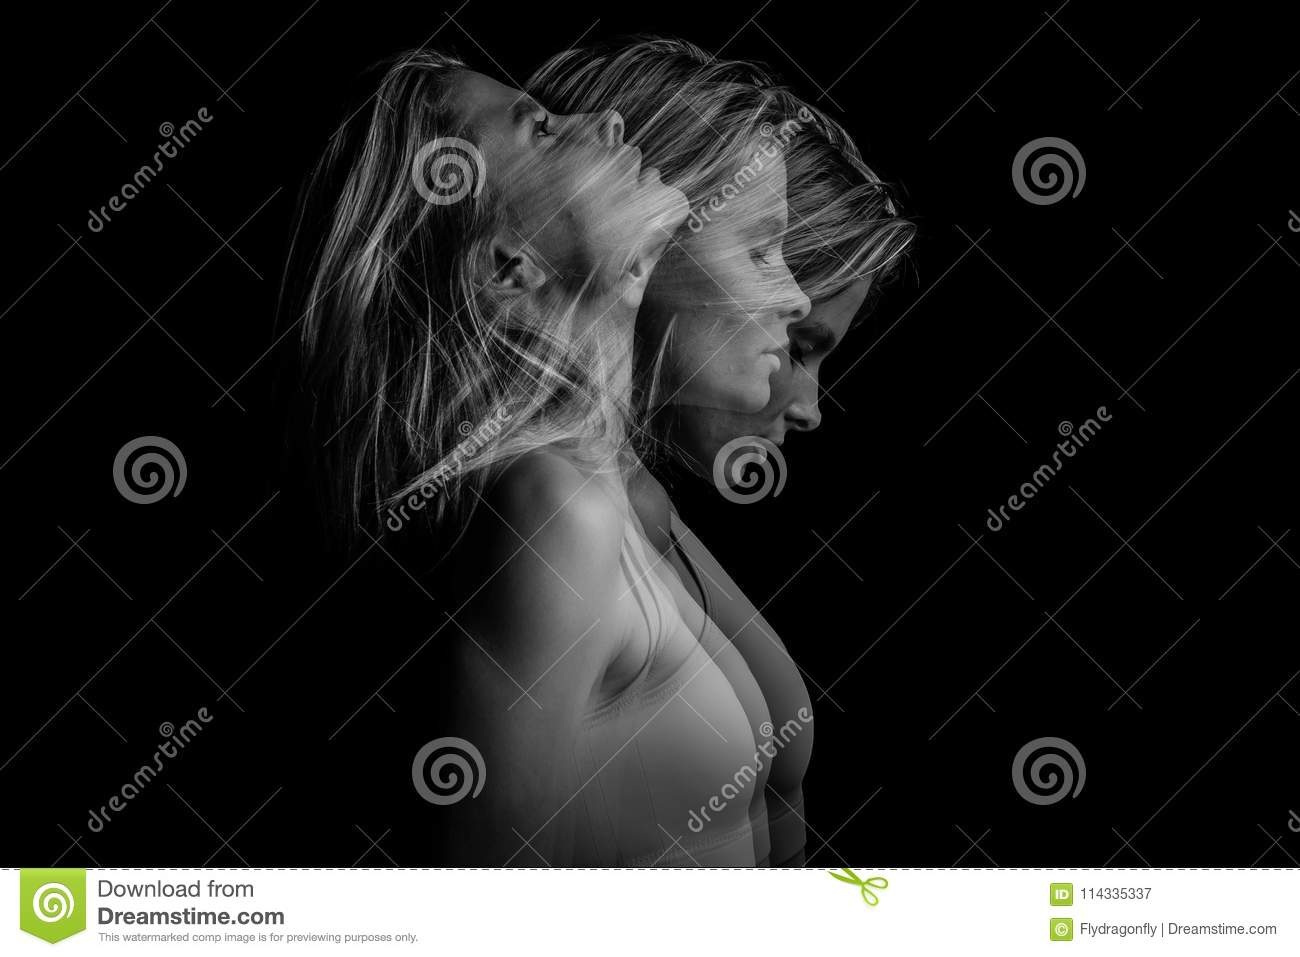 Beautiful phantom mystical mysterious ambiguous original conceptual profile side portrait of young blonde woman on a